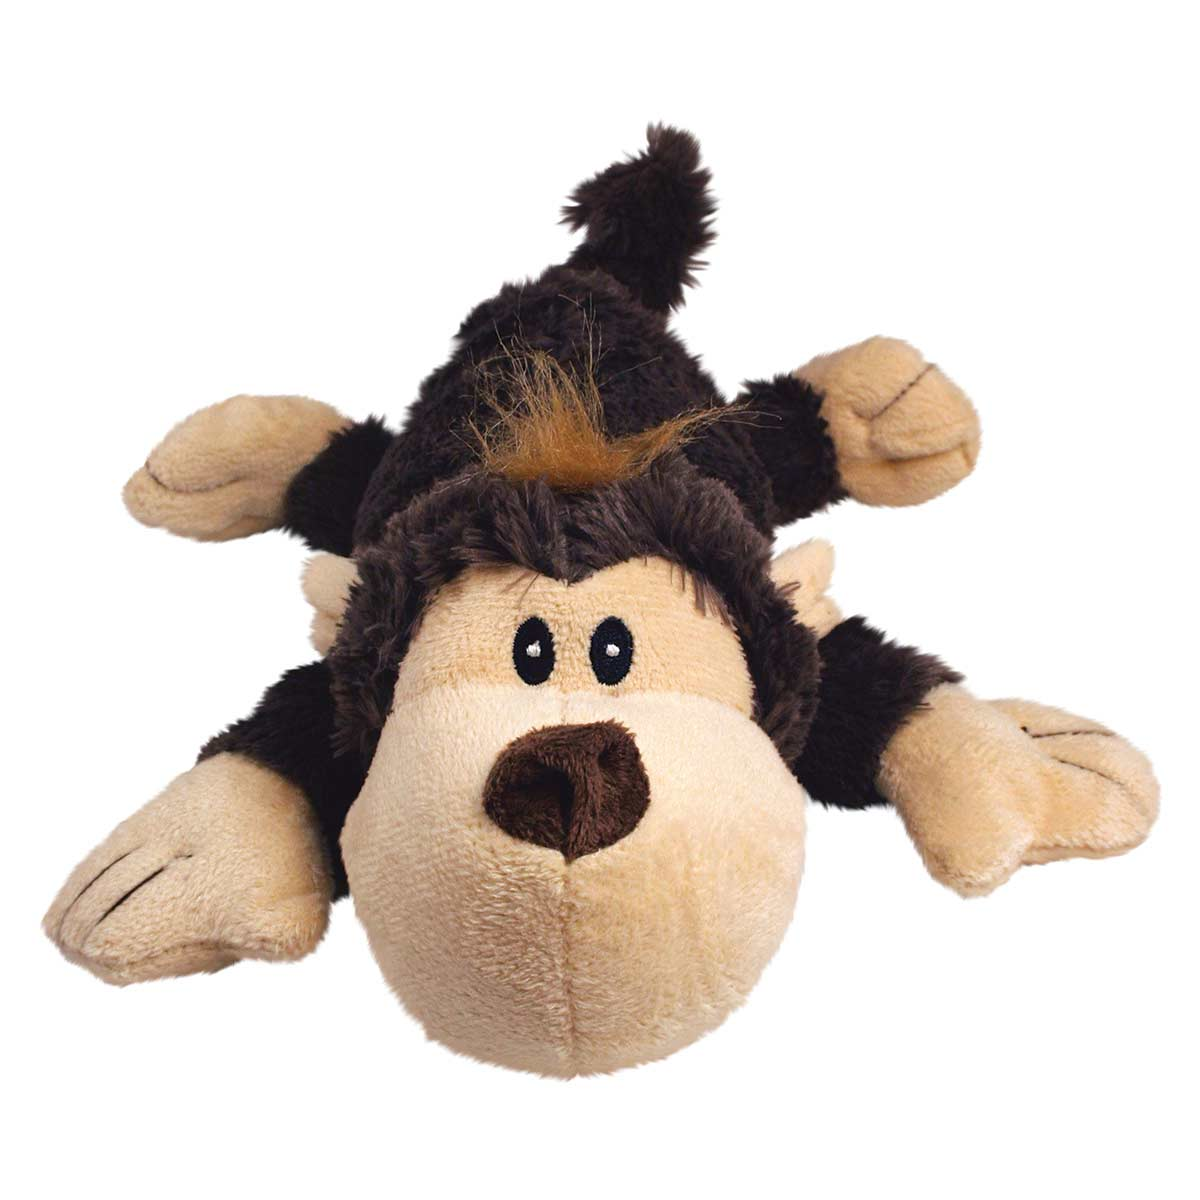 9 inch KONG Cozie Spunky Stuffed Monkey Dog Toy